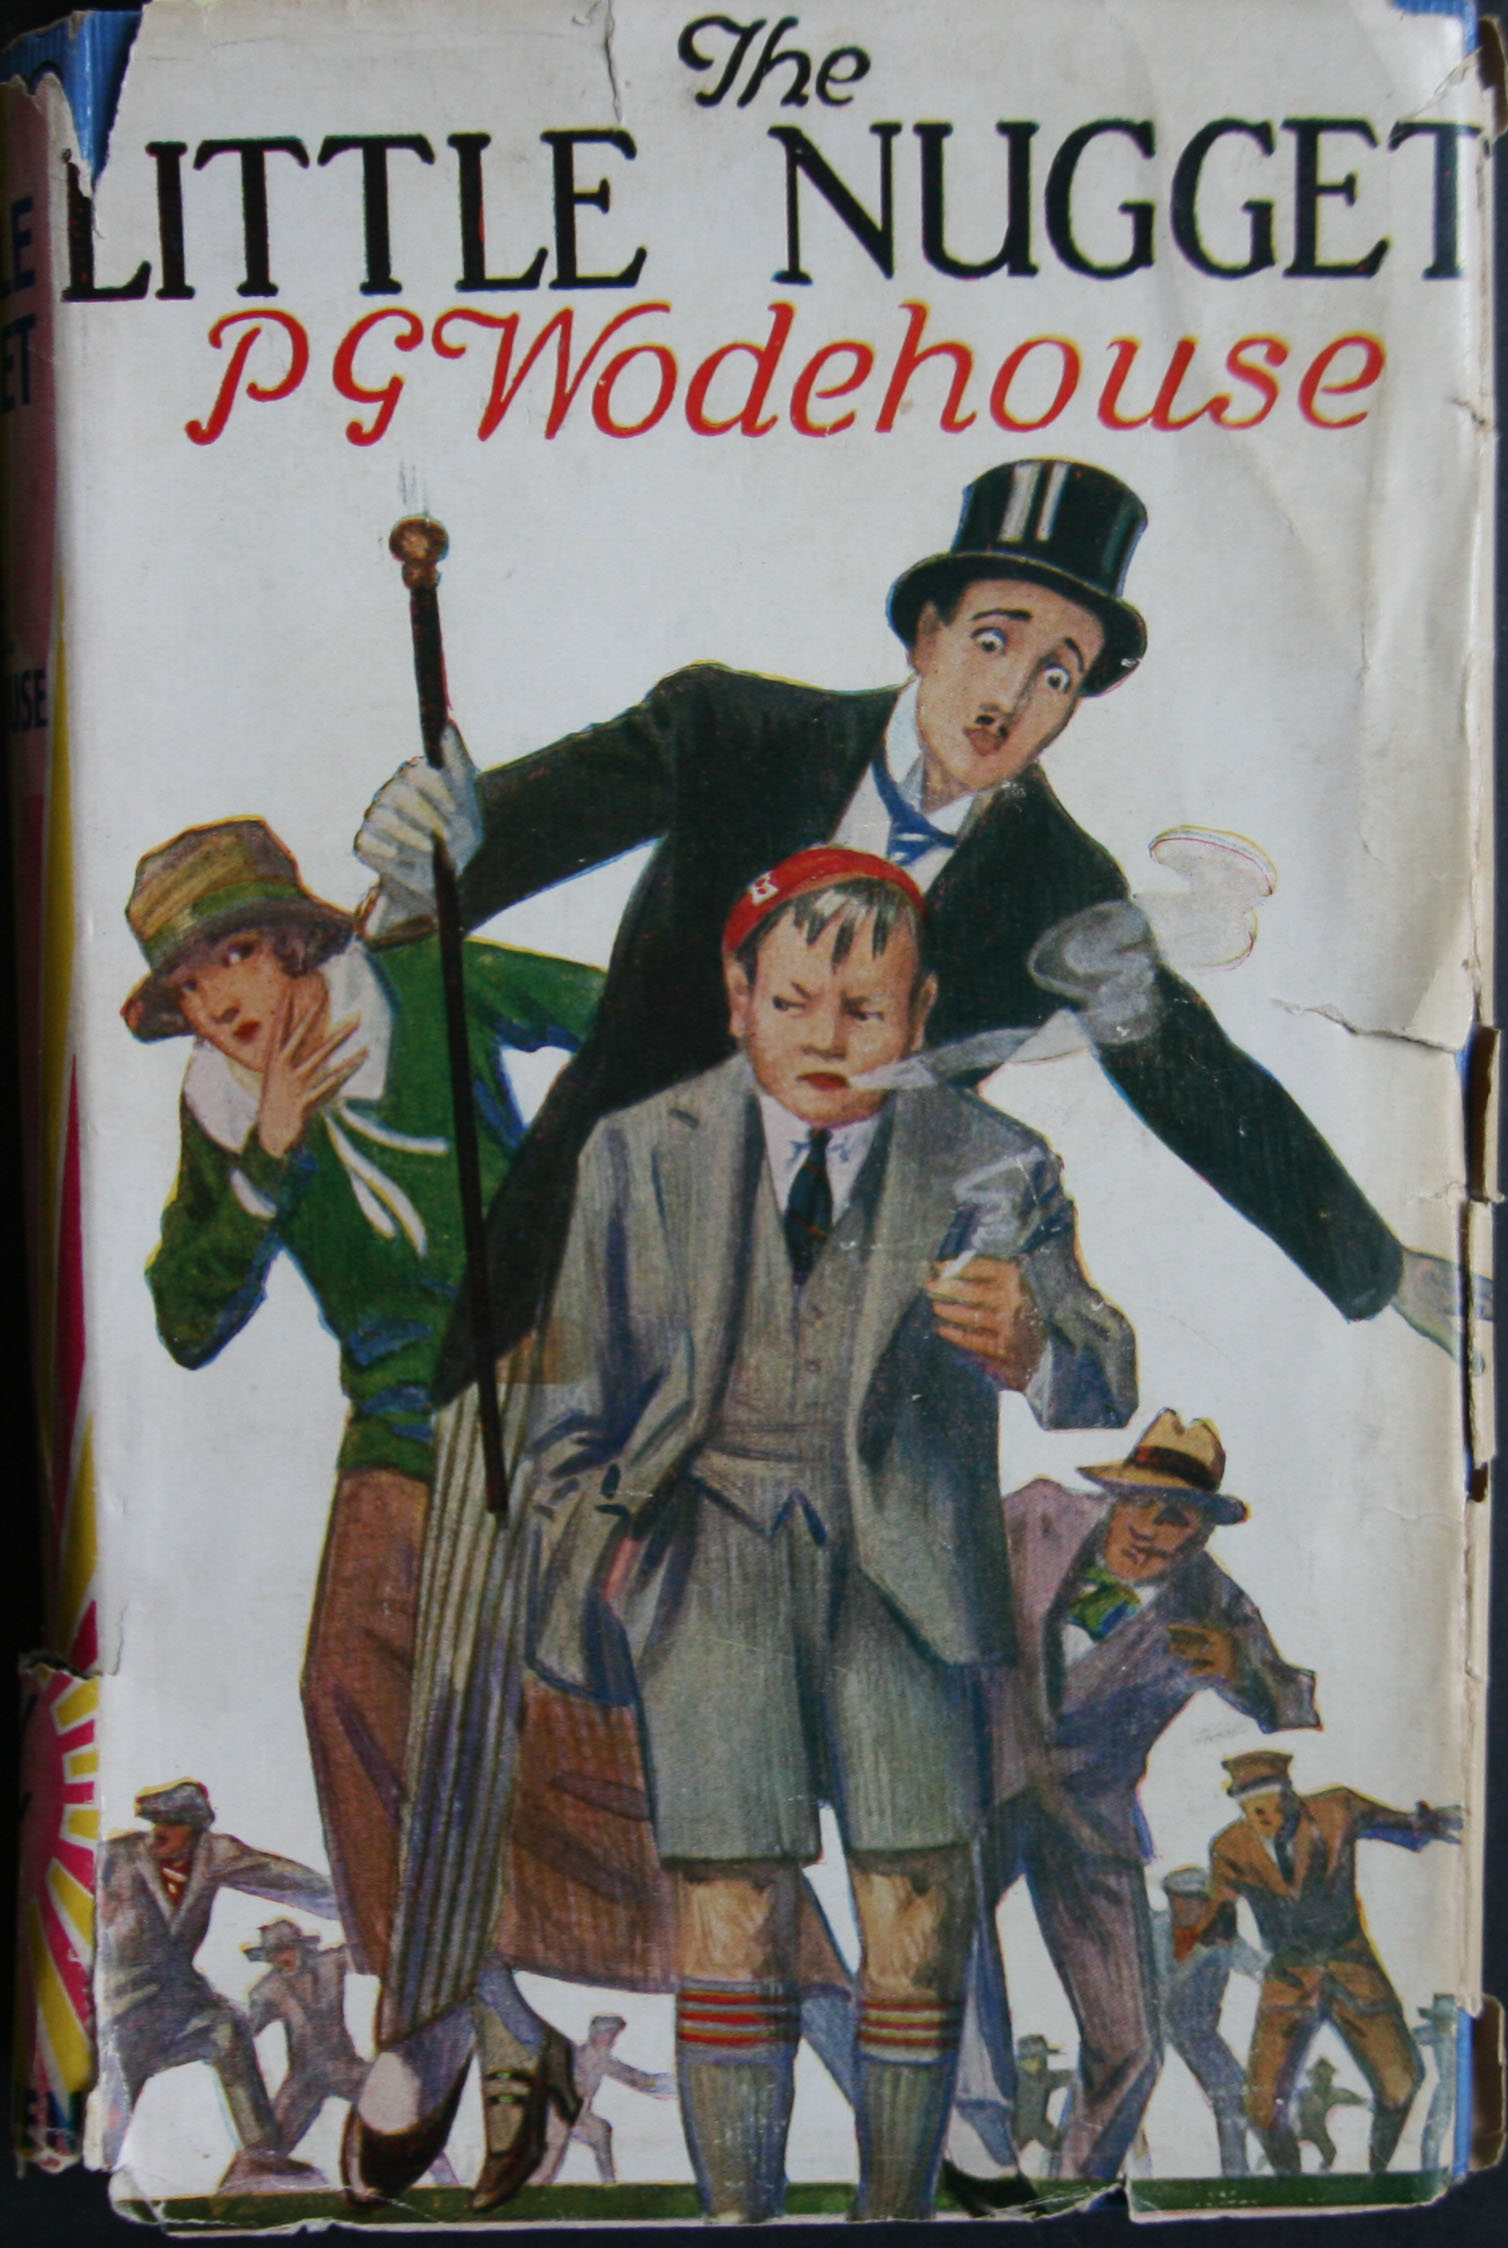 p g wodehouse the little nugget